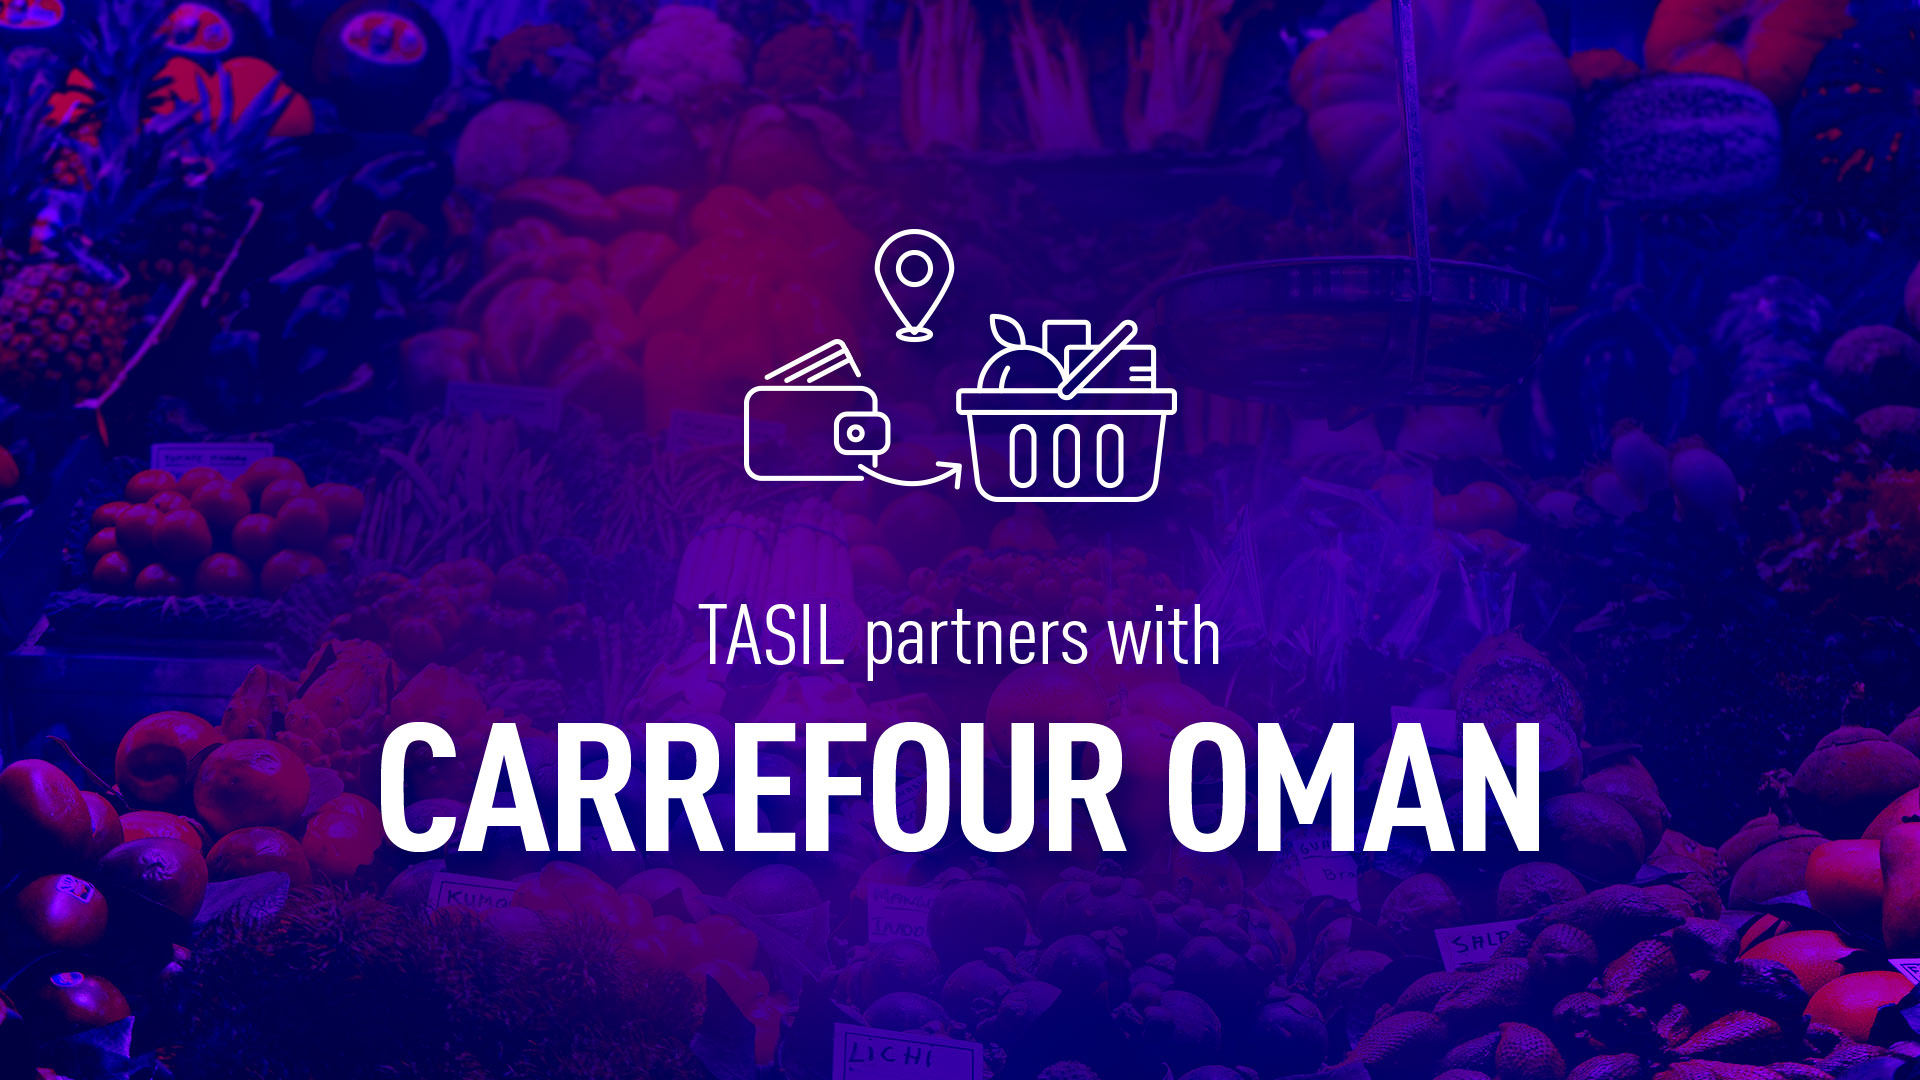 Carrefour, a giant retailer, starts cooperation with Tasil Oman